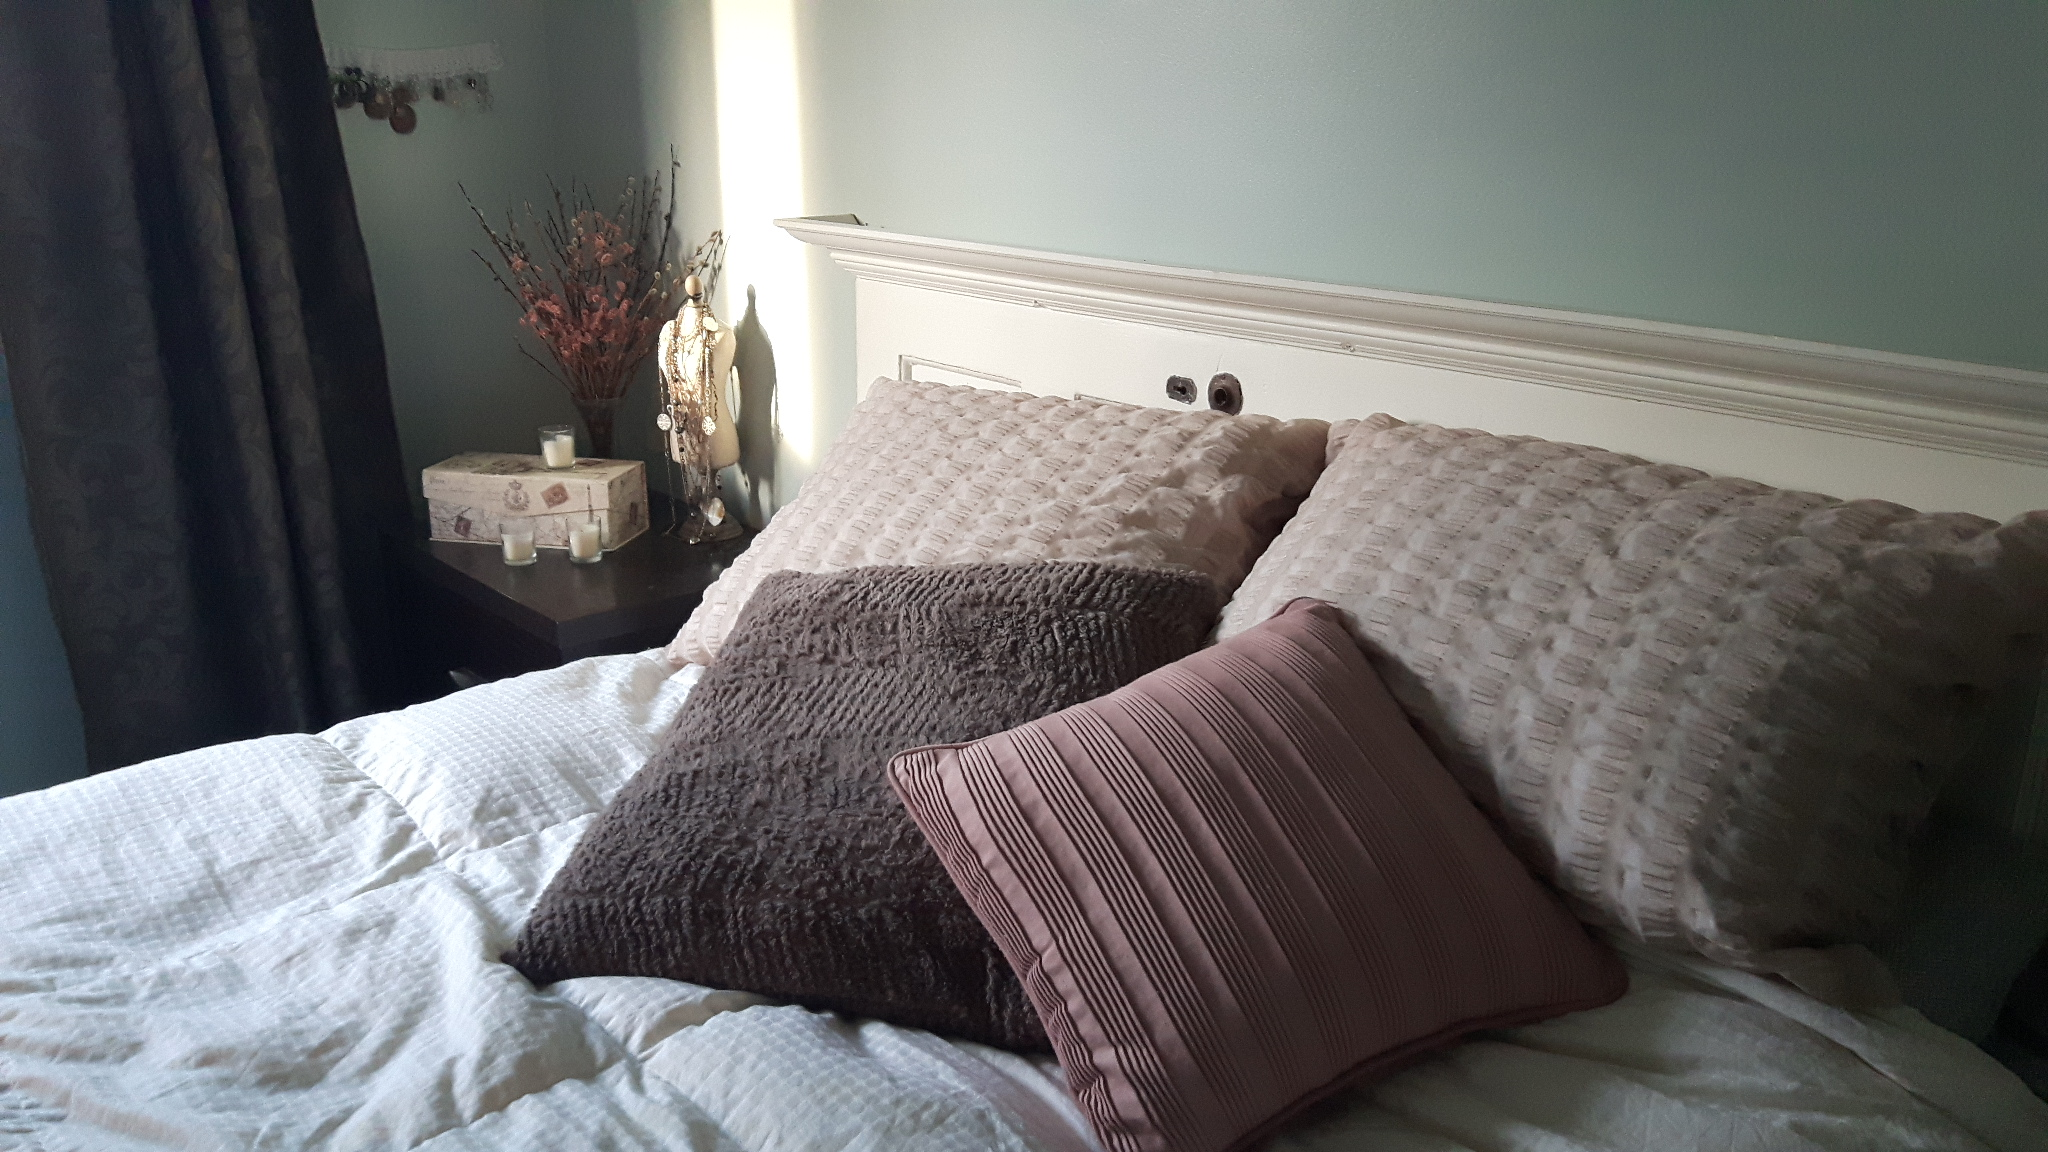 5 Things You Can Do to Make Your Bedroom a Relaxing Haven